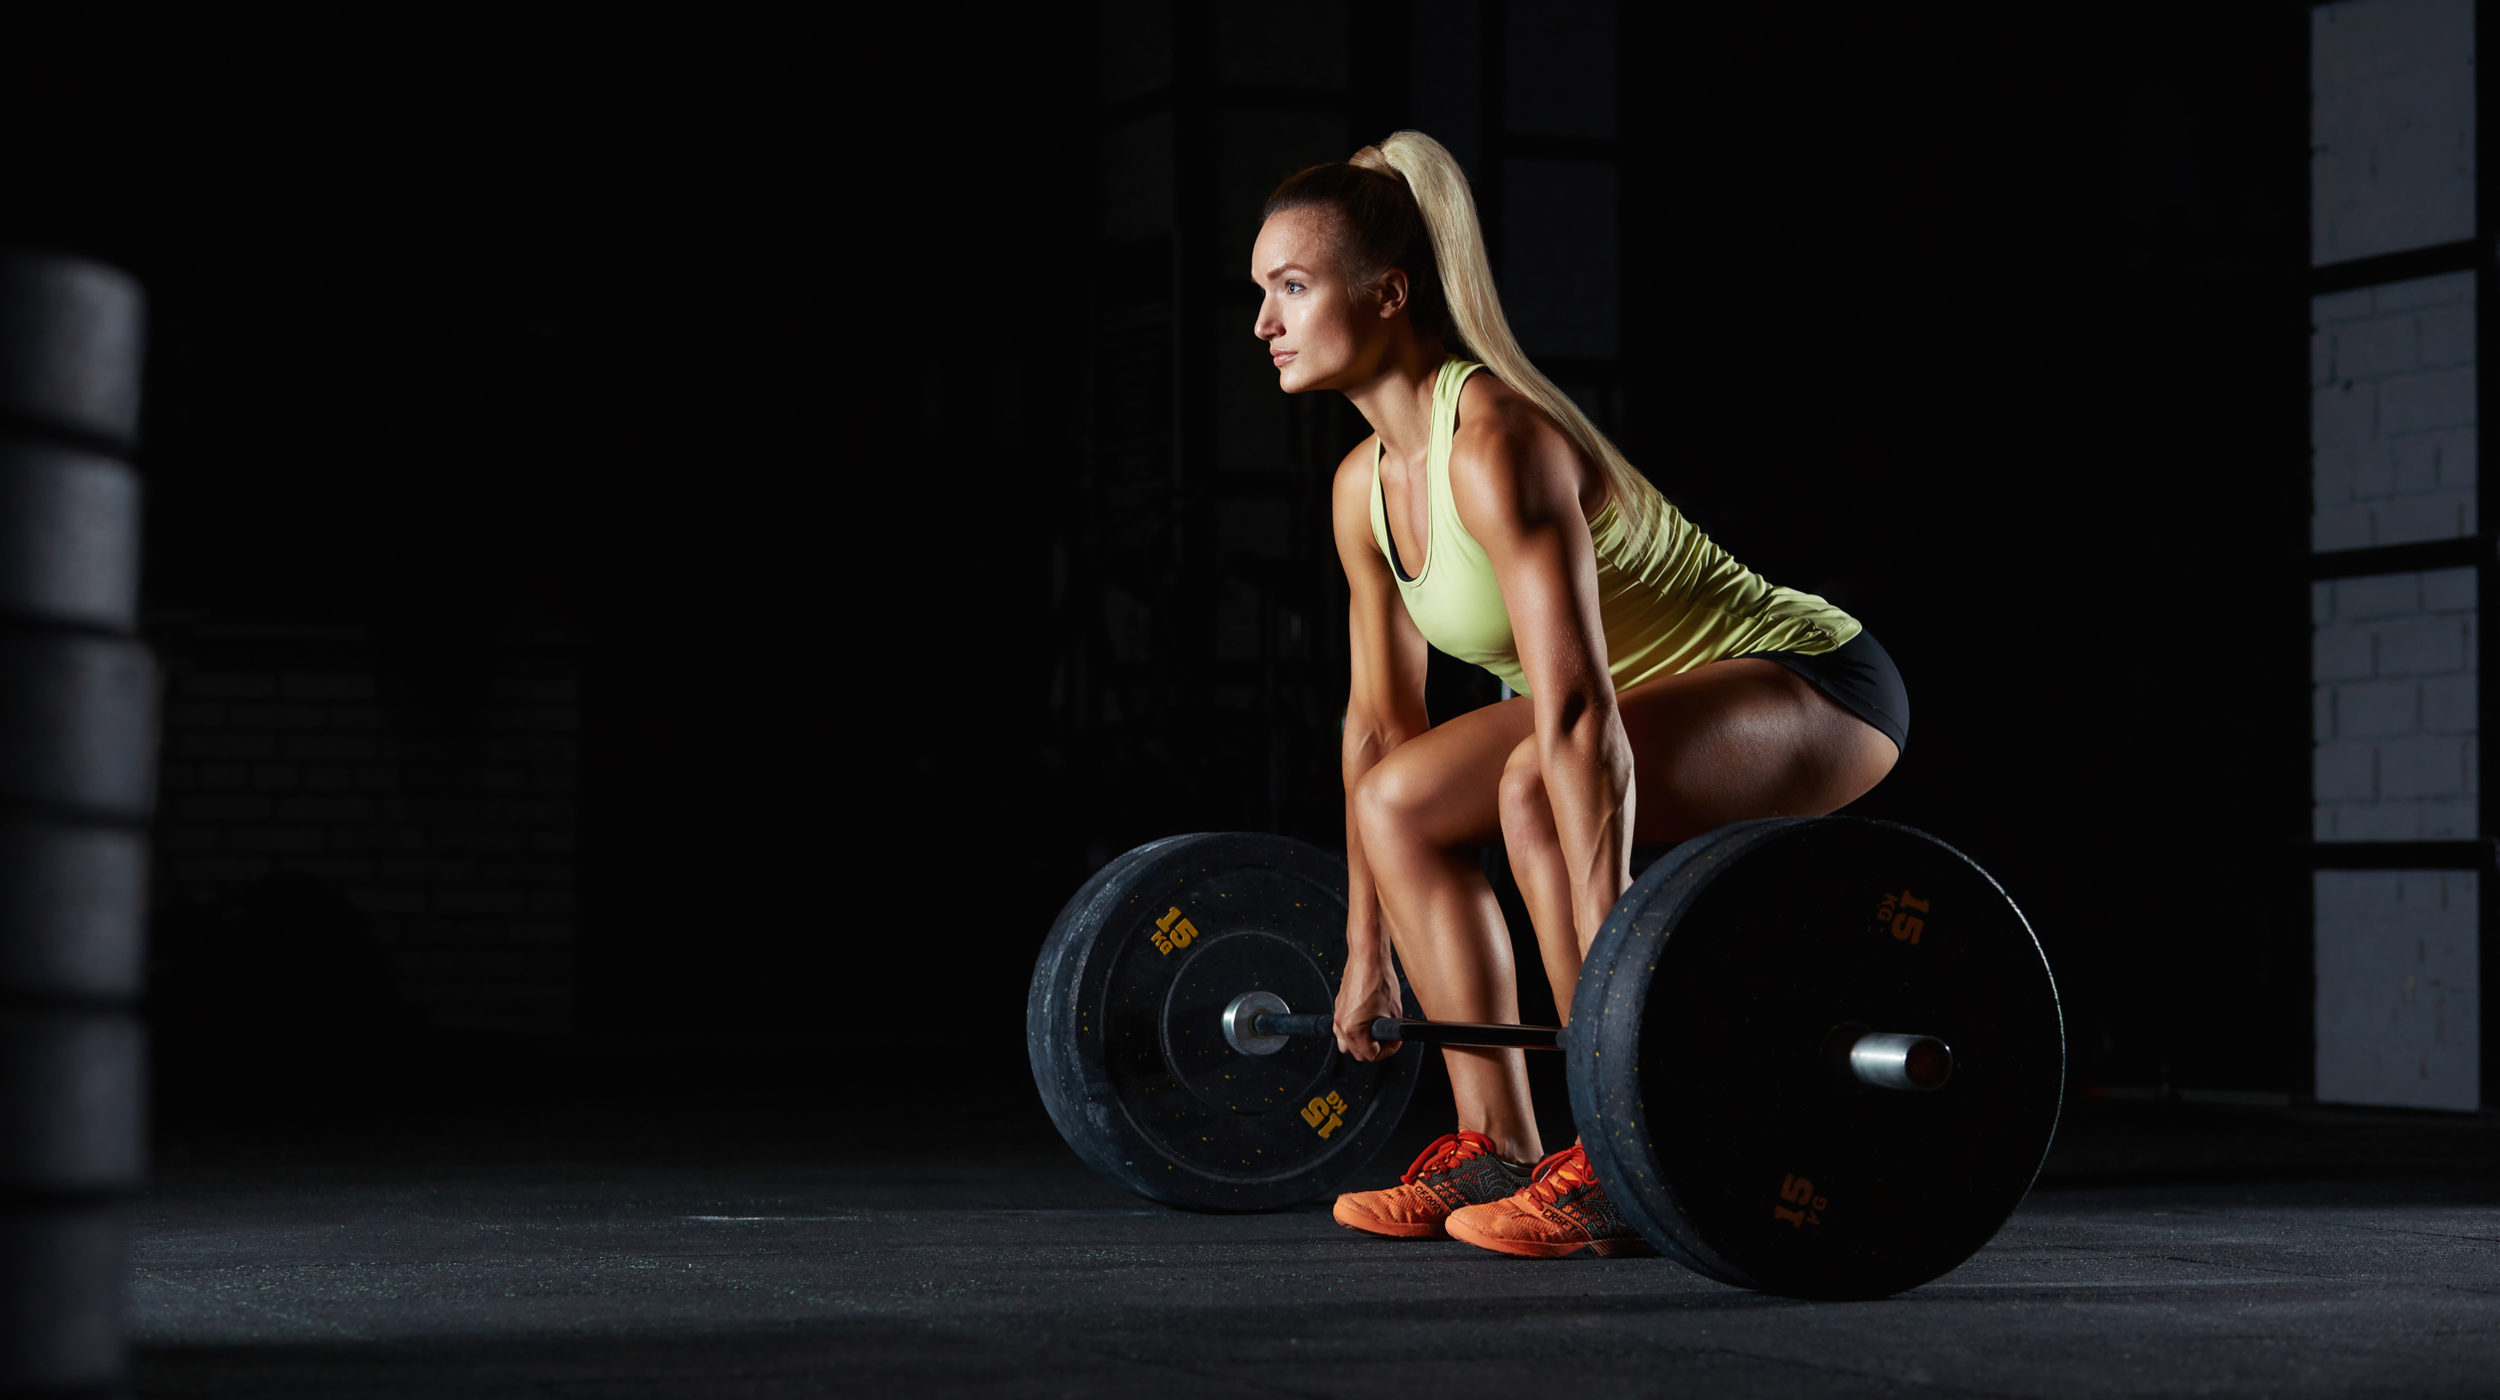 Resistance Training for the Goal of Weight Loss